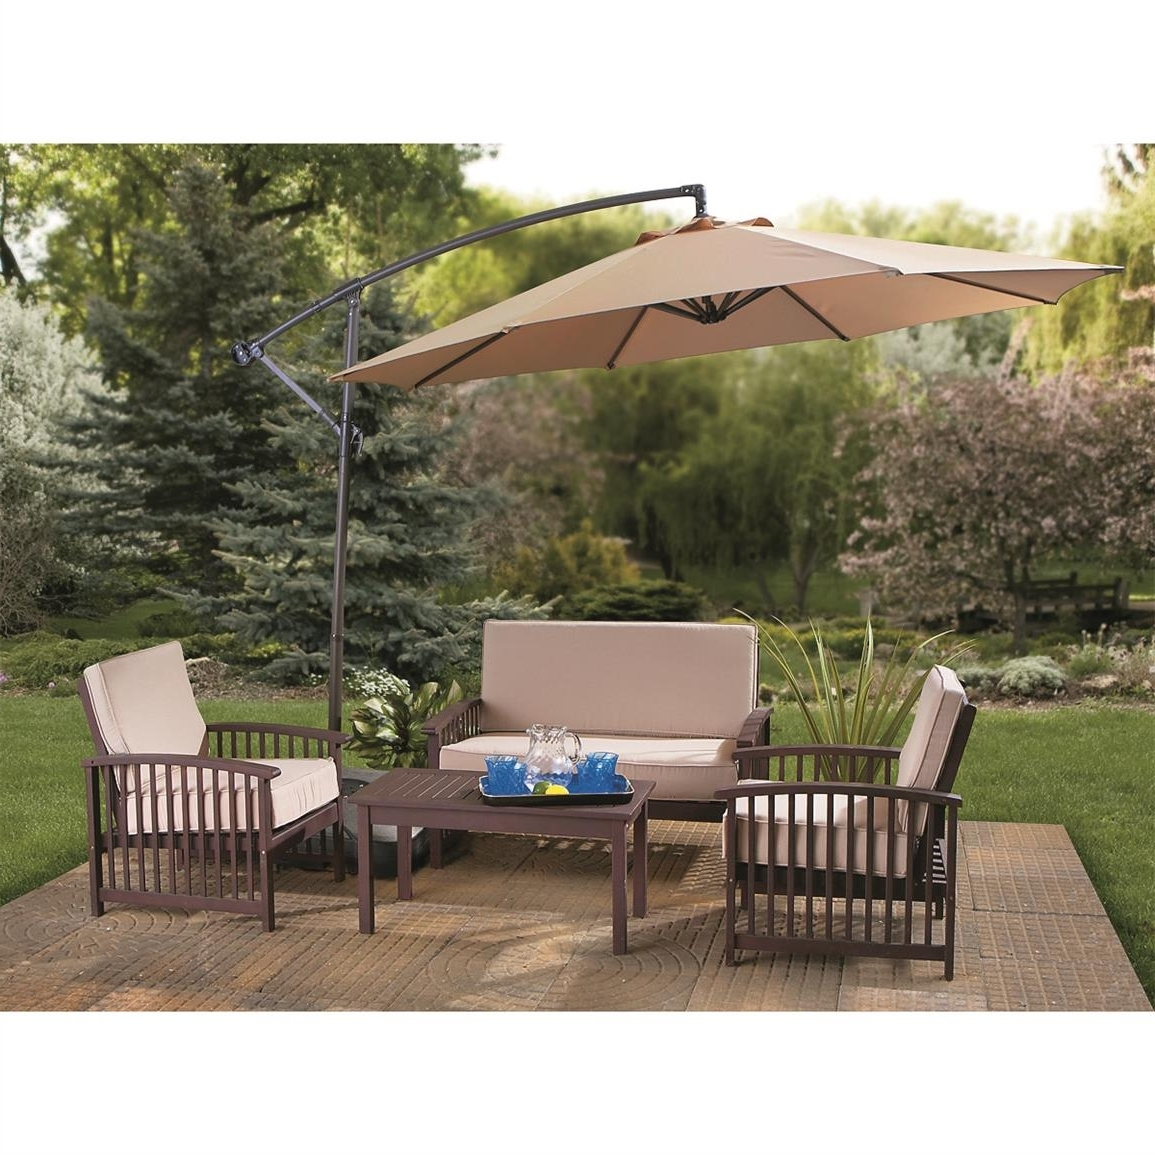 Recent Castlecreek 10' Cantilever Patio Umbrella – 234178, Patio Umbrellas With Expensive Patio Umbrellas (View 16 of 20)